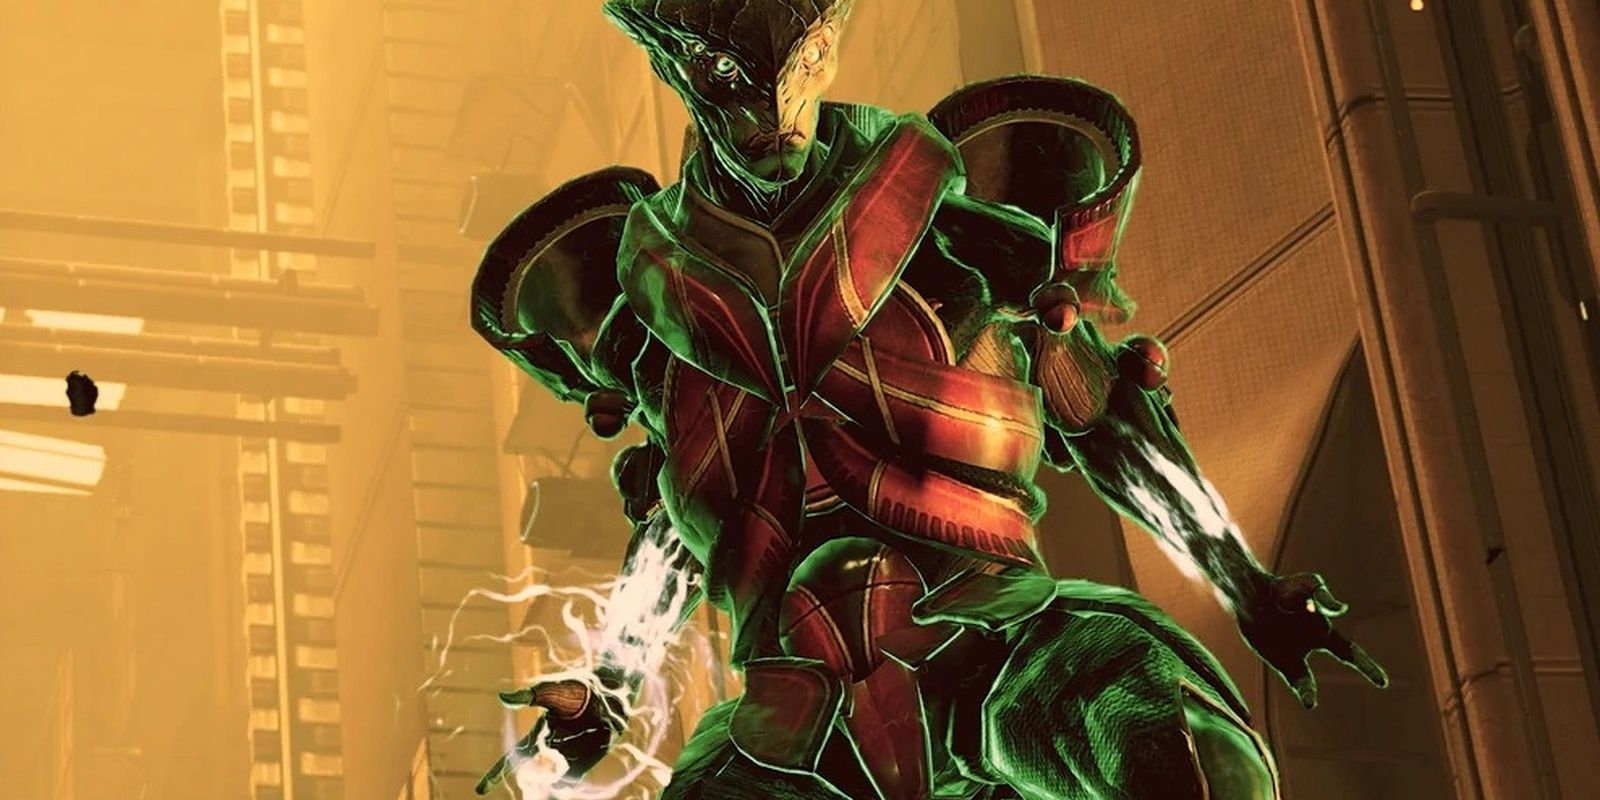 Mass Effect: The Protheans Weren't Ancient Sages - They Were Brutal Imperialists